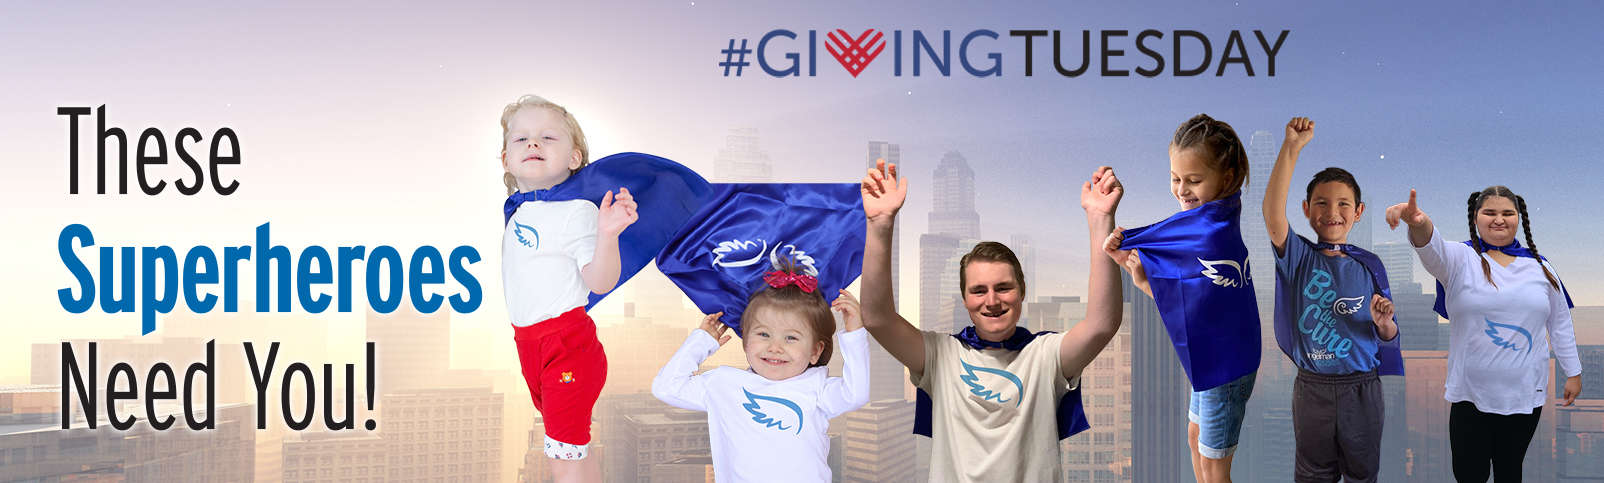 Support Superheroes this Giving Tuesday